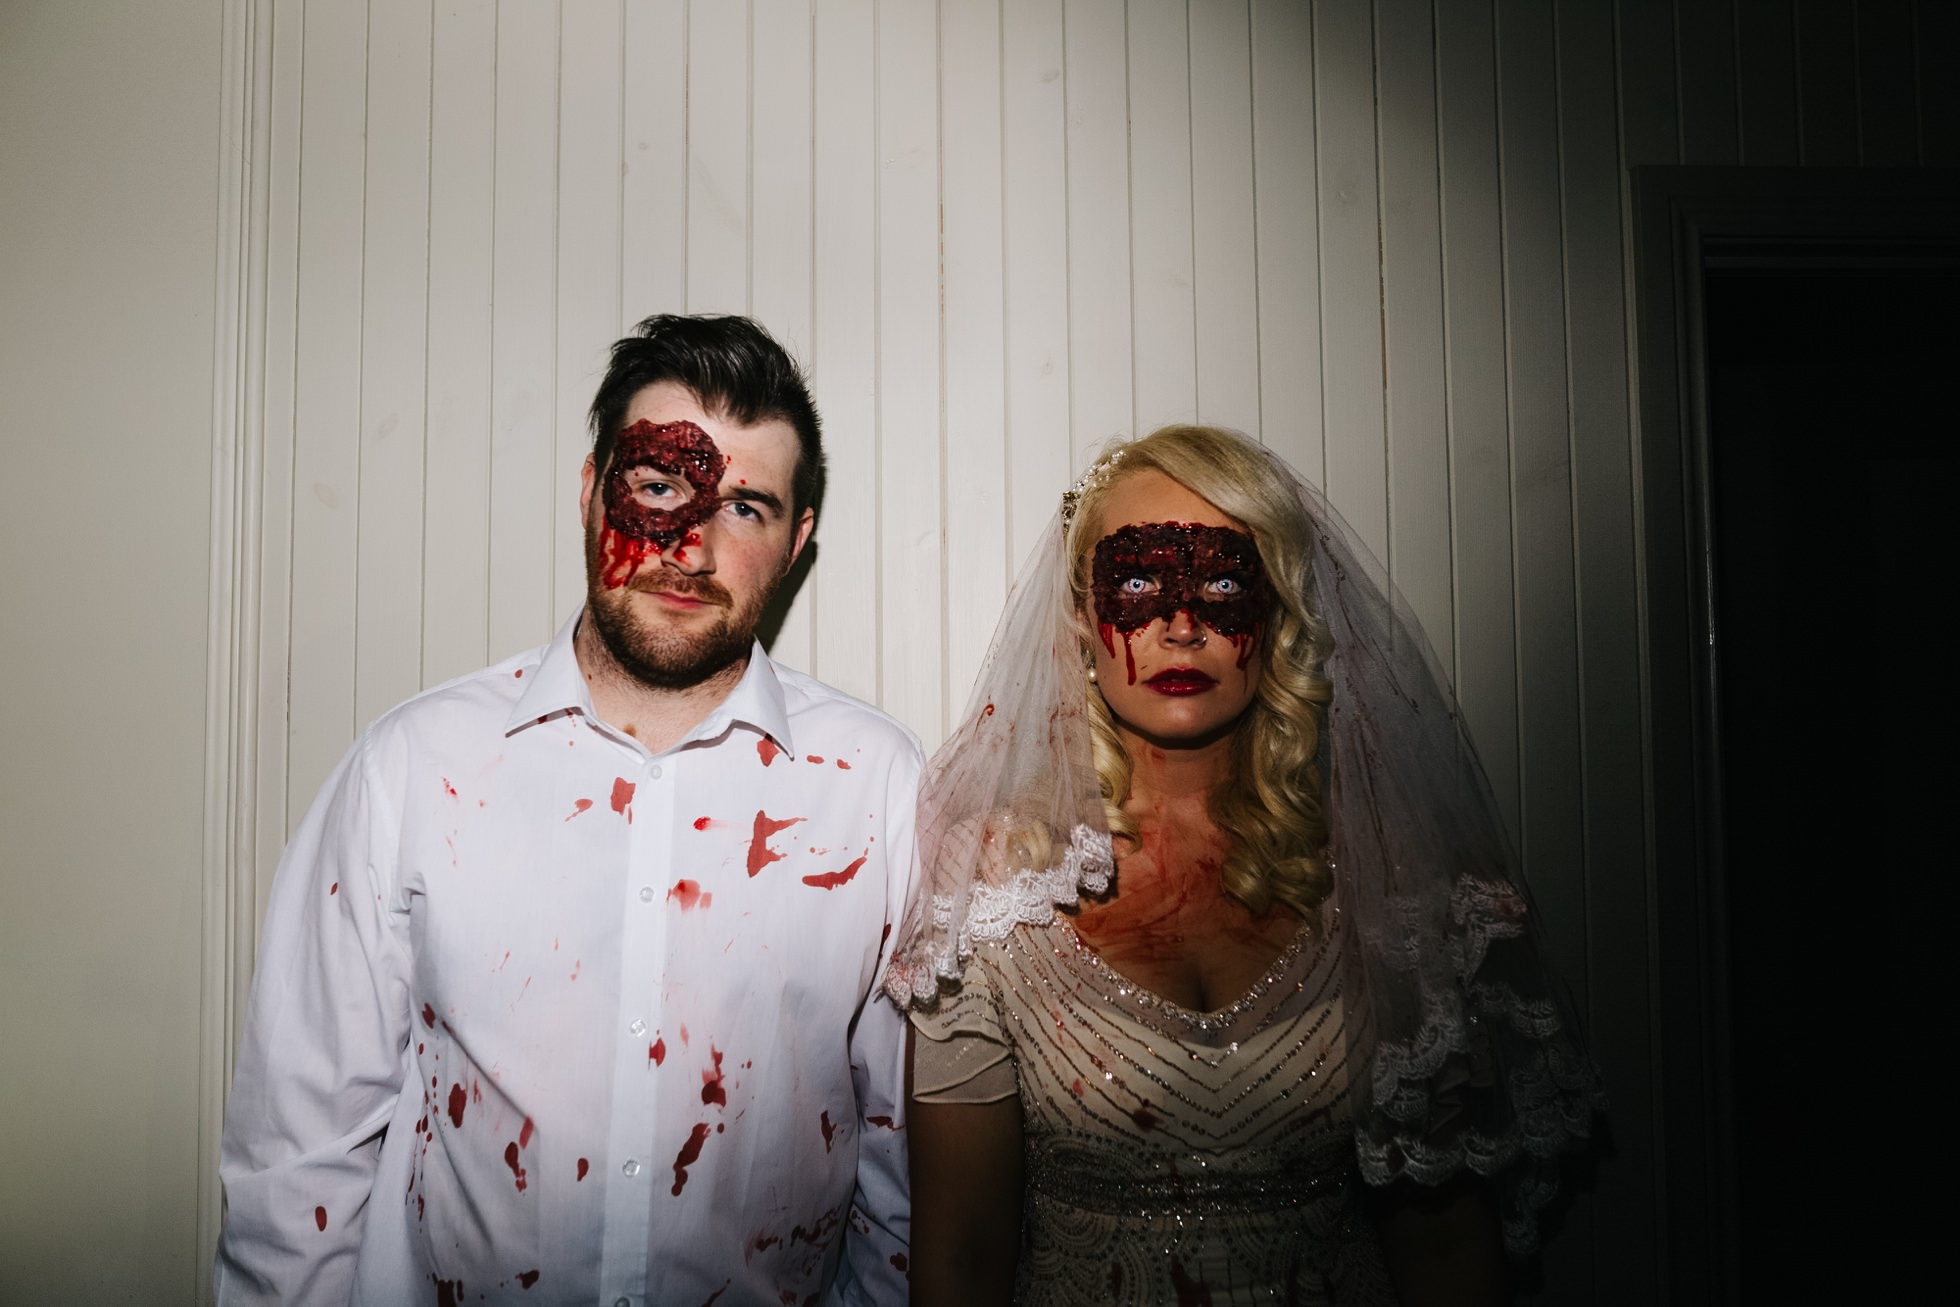 wedding photographer northern ireland, halloween